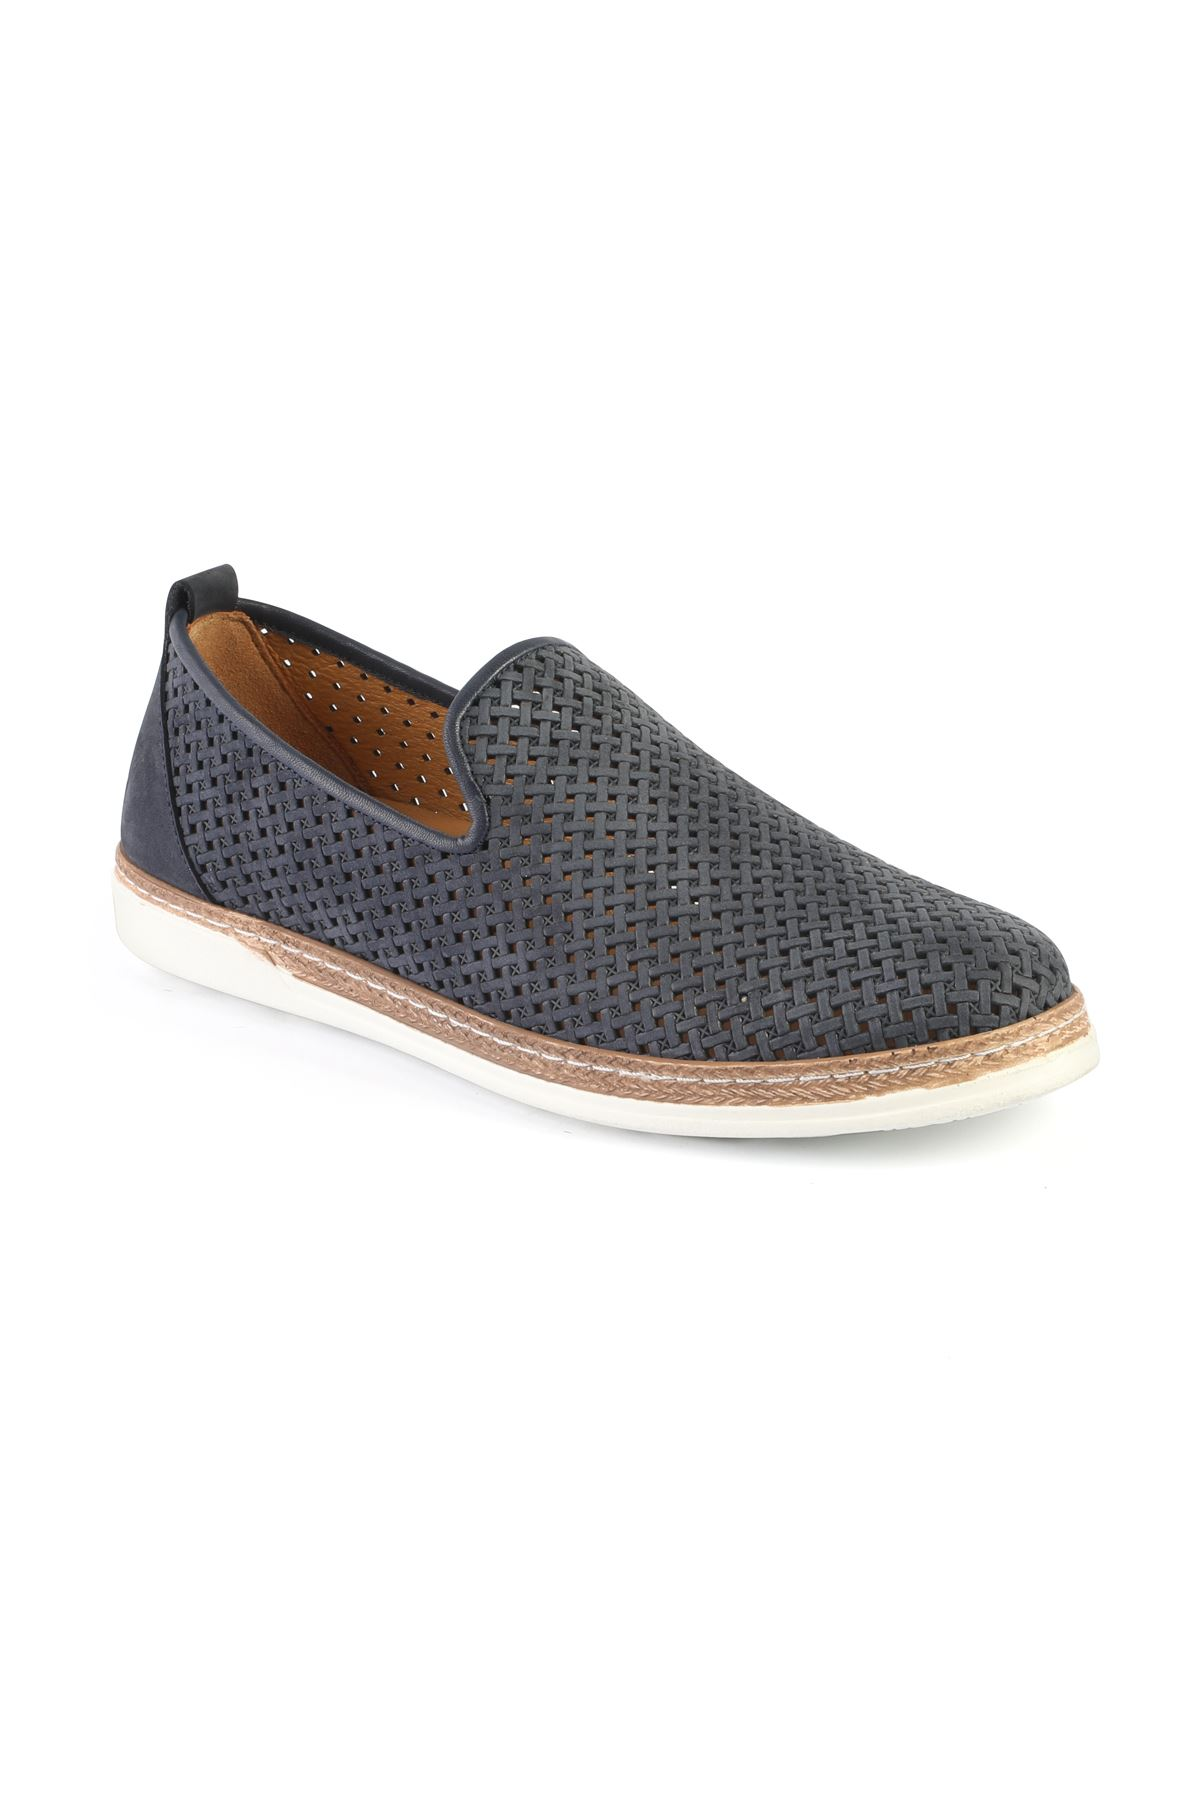 Libero 3397 Navy Blue Loafer Shoes